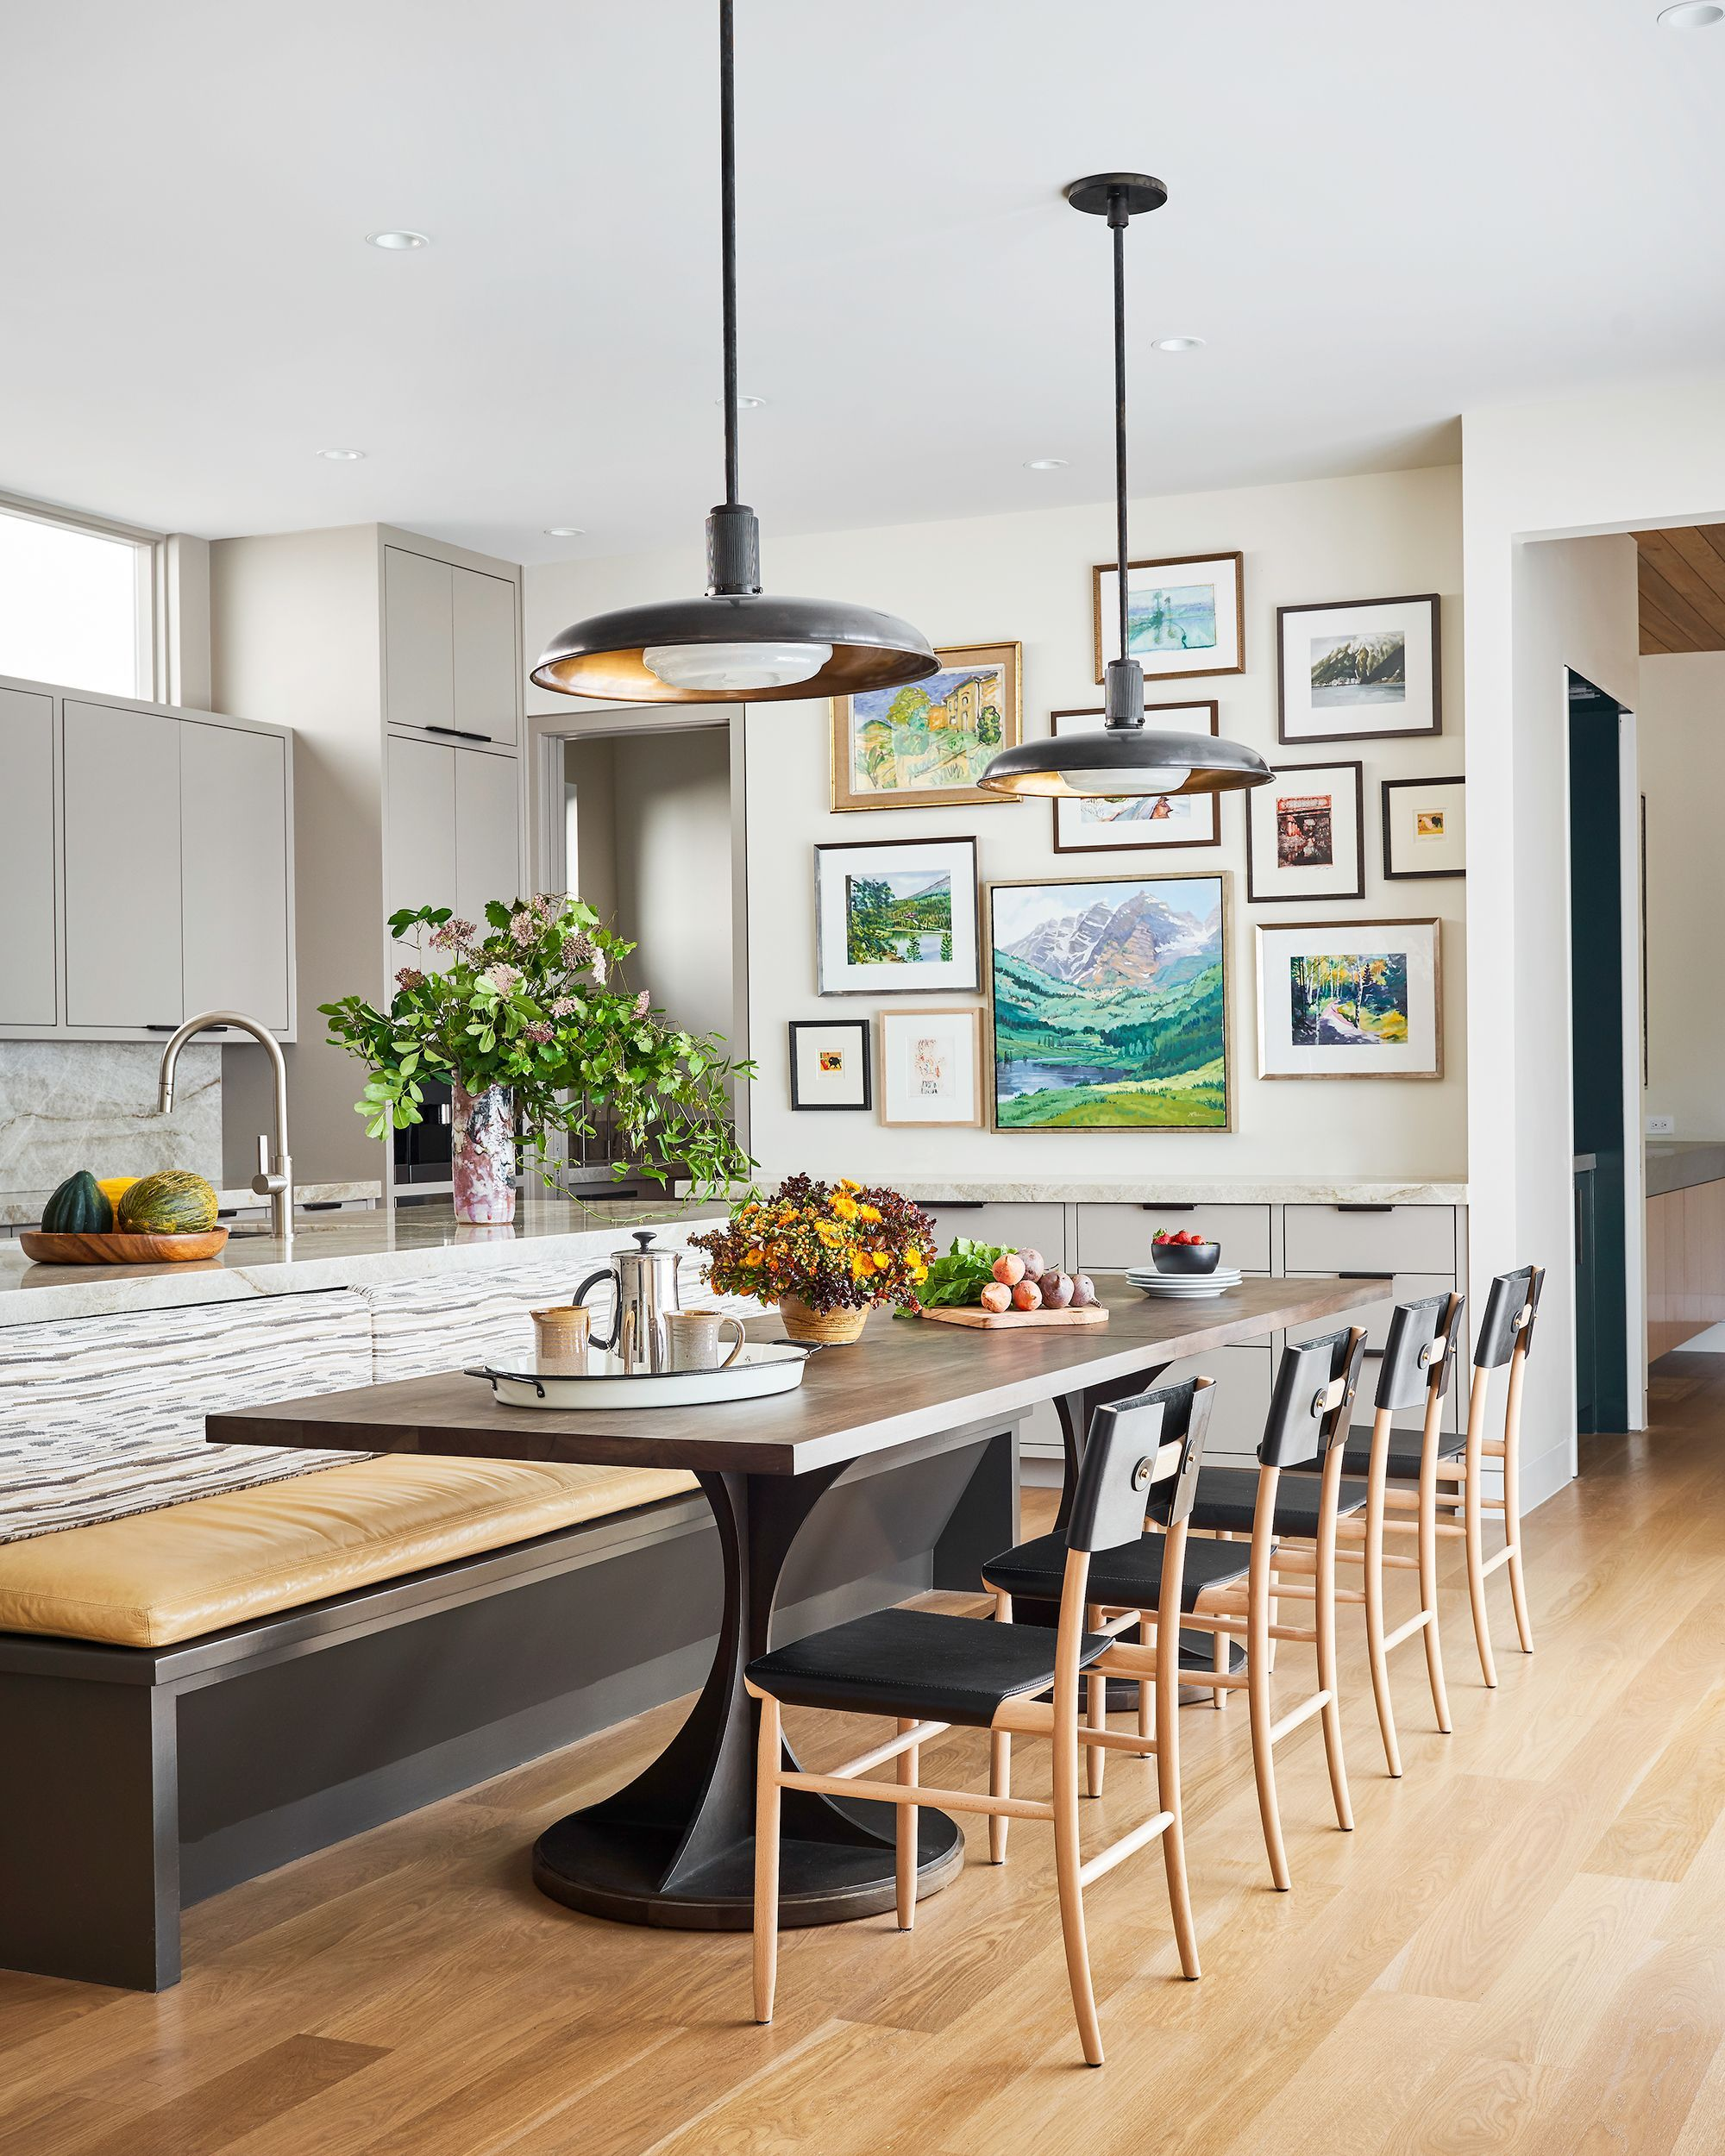 15 Stylish Banquette Seating Ideas, Built In Banquette Seating Dining Room